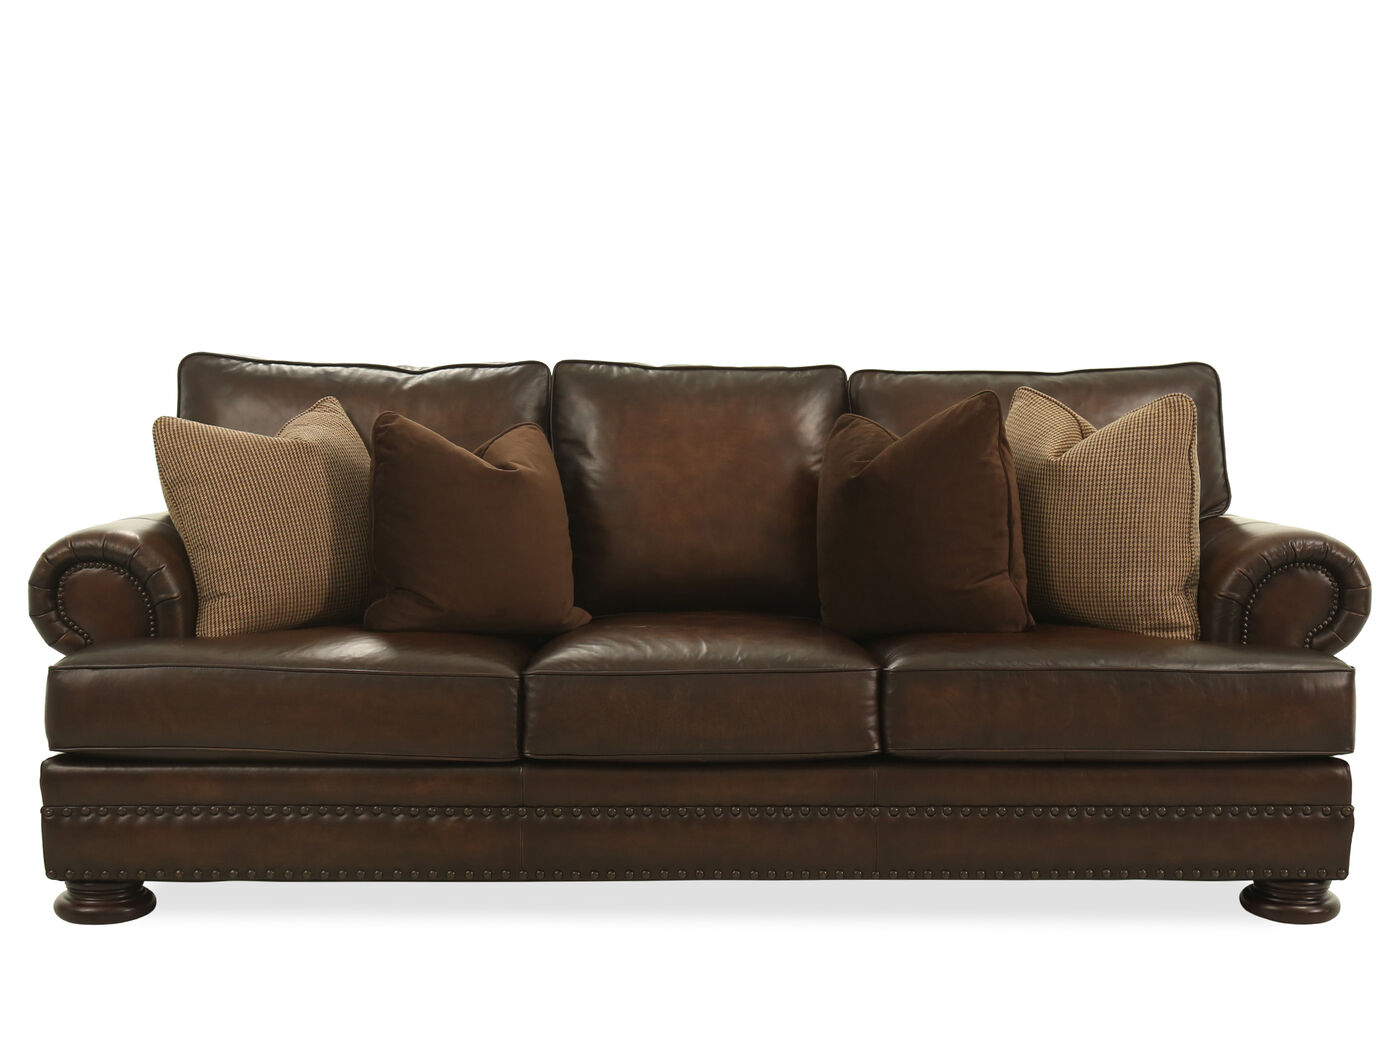 Mathis Brothers Bernhardt Leather Sofas 28 Images